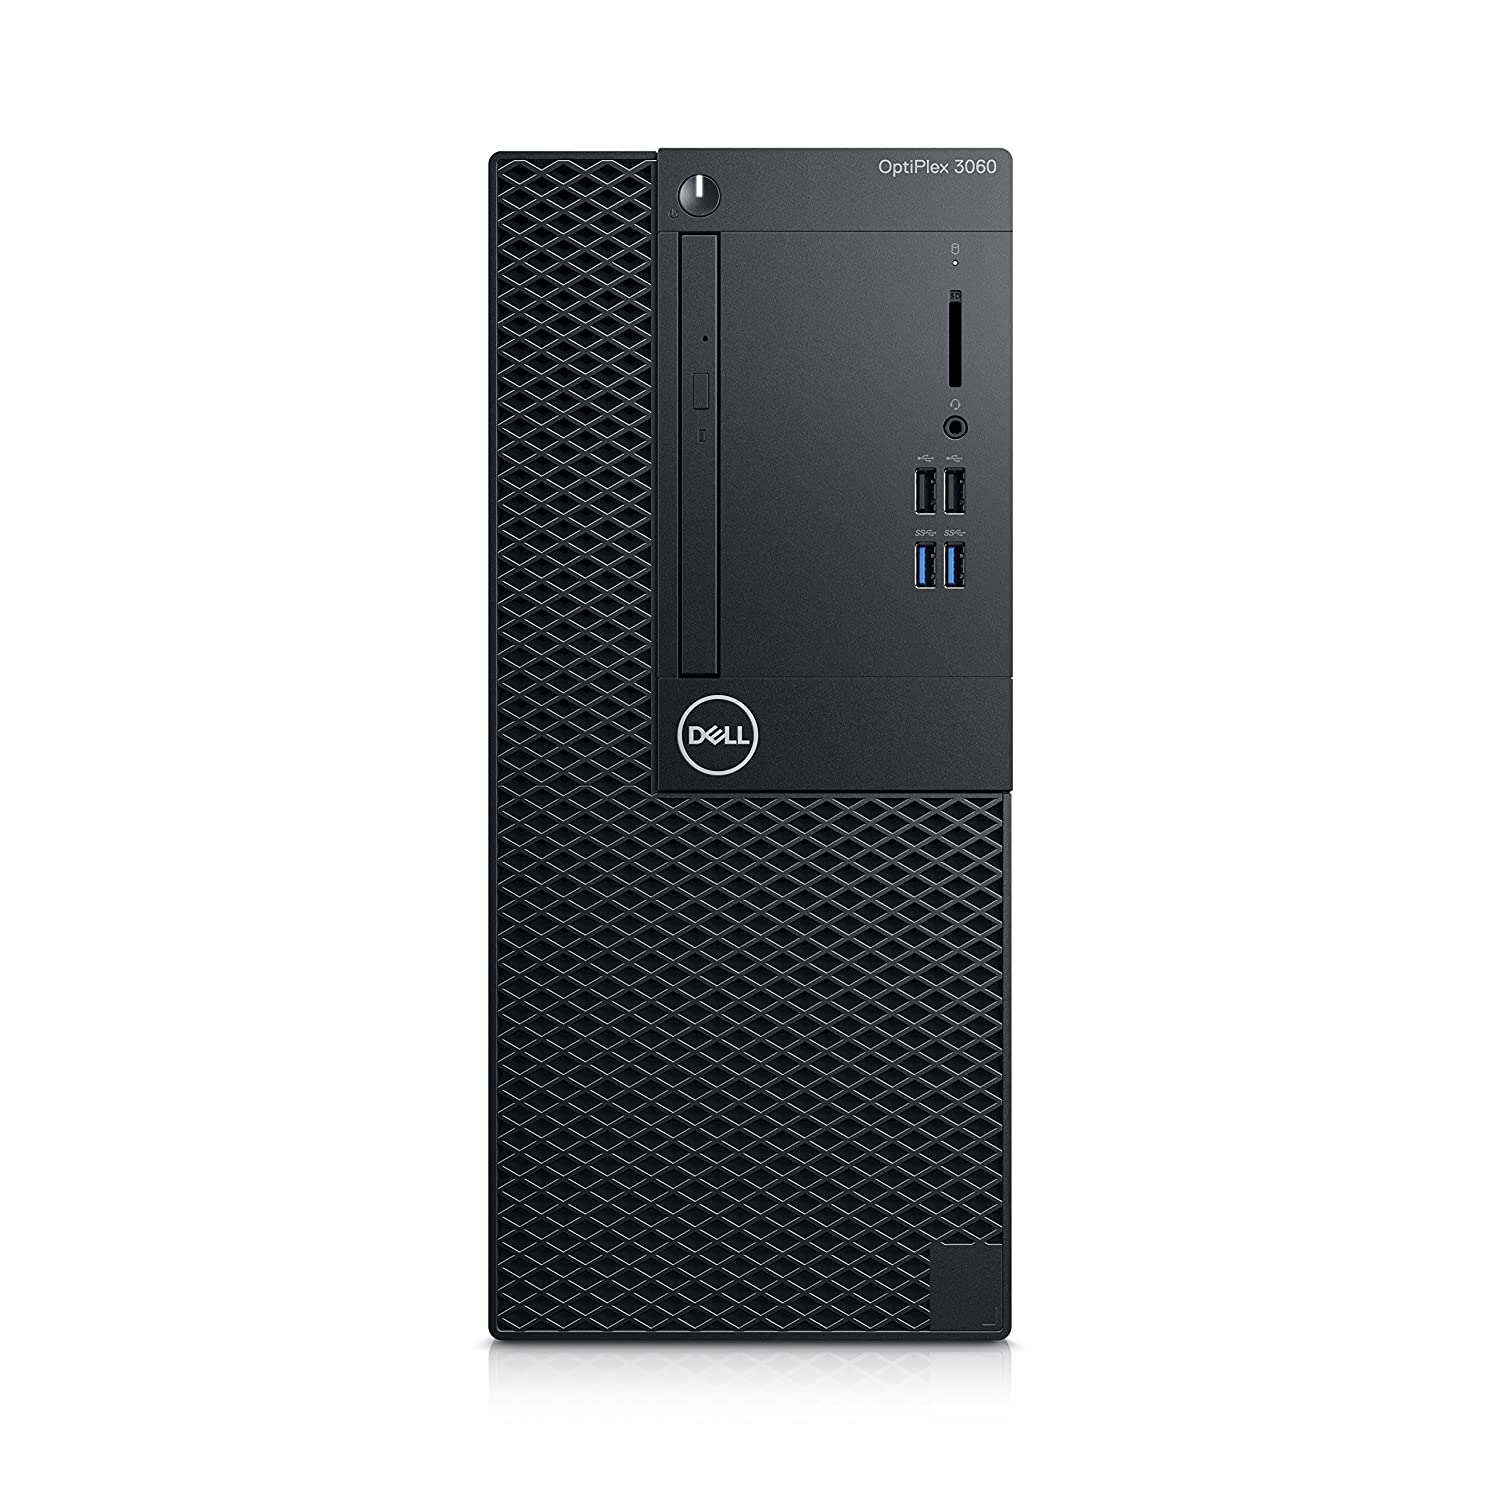 OPTIPLEX 3060 MT I5 4/500GB W10P 1N